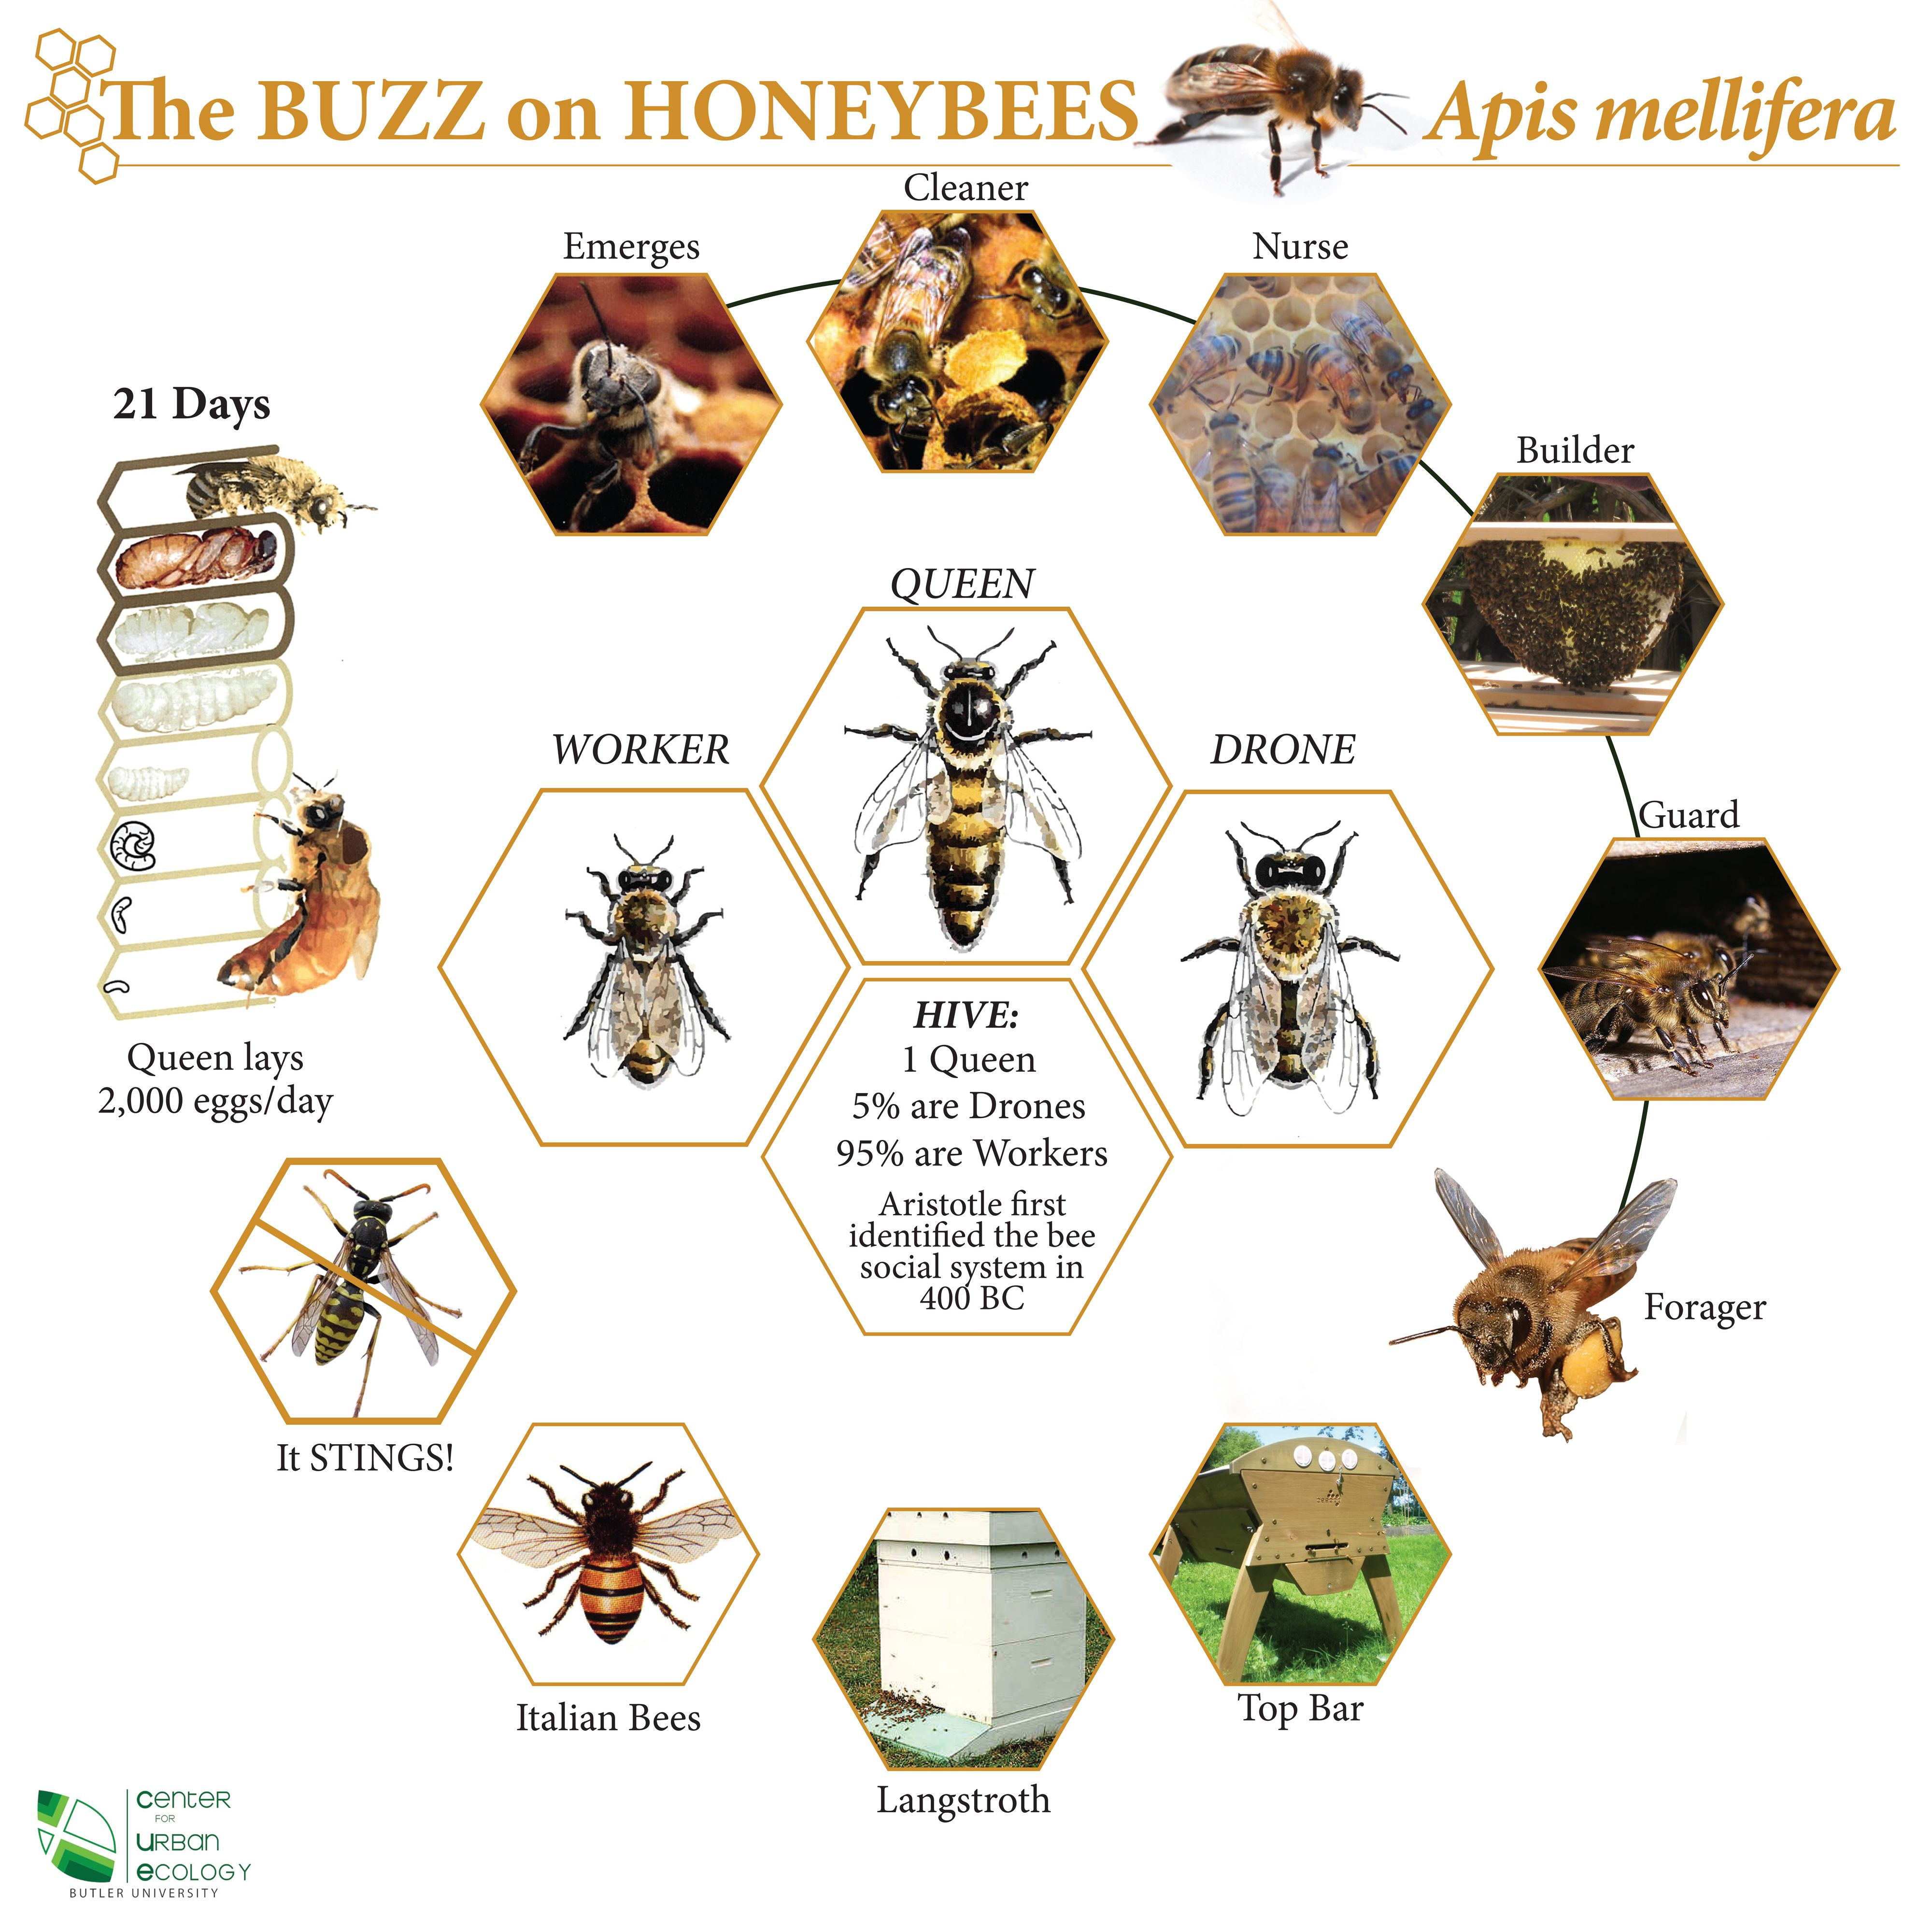 Interesting honey bee chart the picture labeled it stings shows  yellow jacket not to help you know difference also rh pinterest